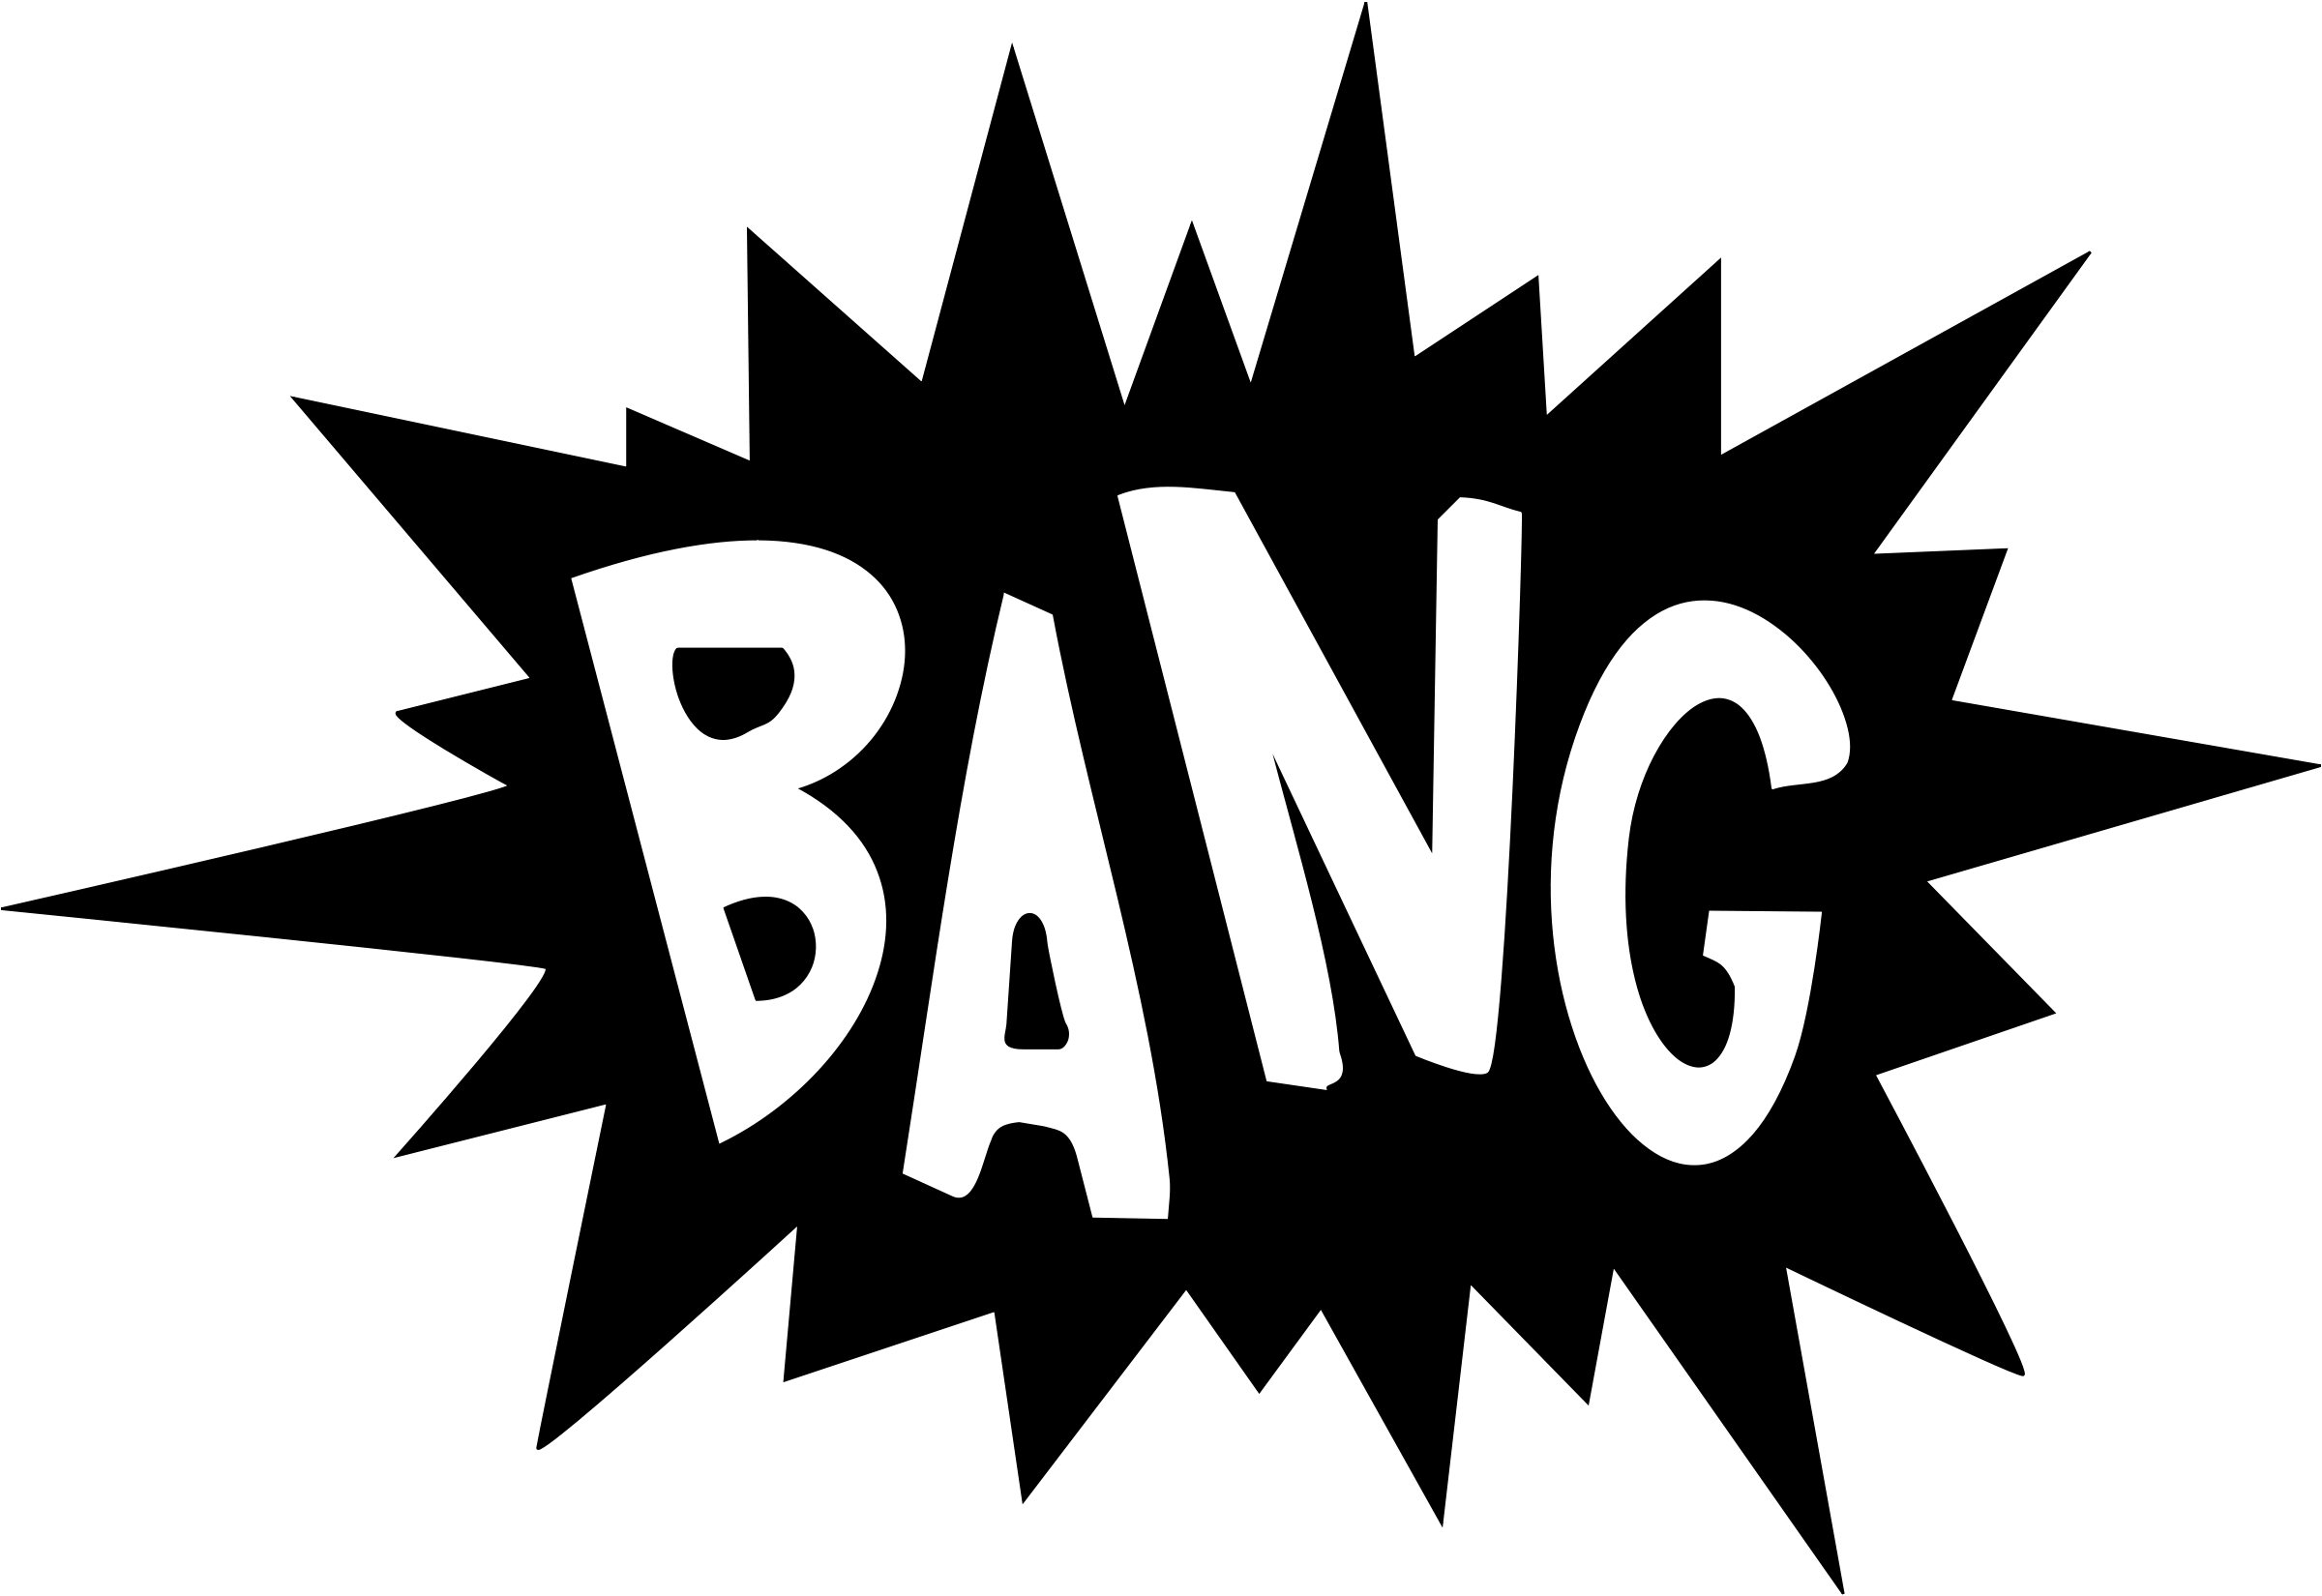 Comic book clipart black and white image download Bang 20clipart | Clipart Panda - Free Clipart Images image download